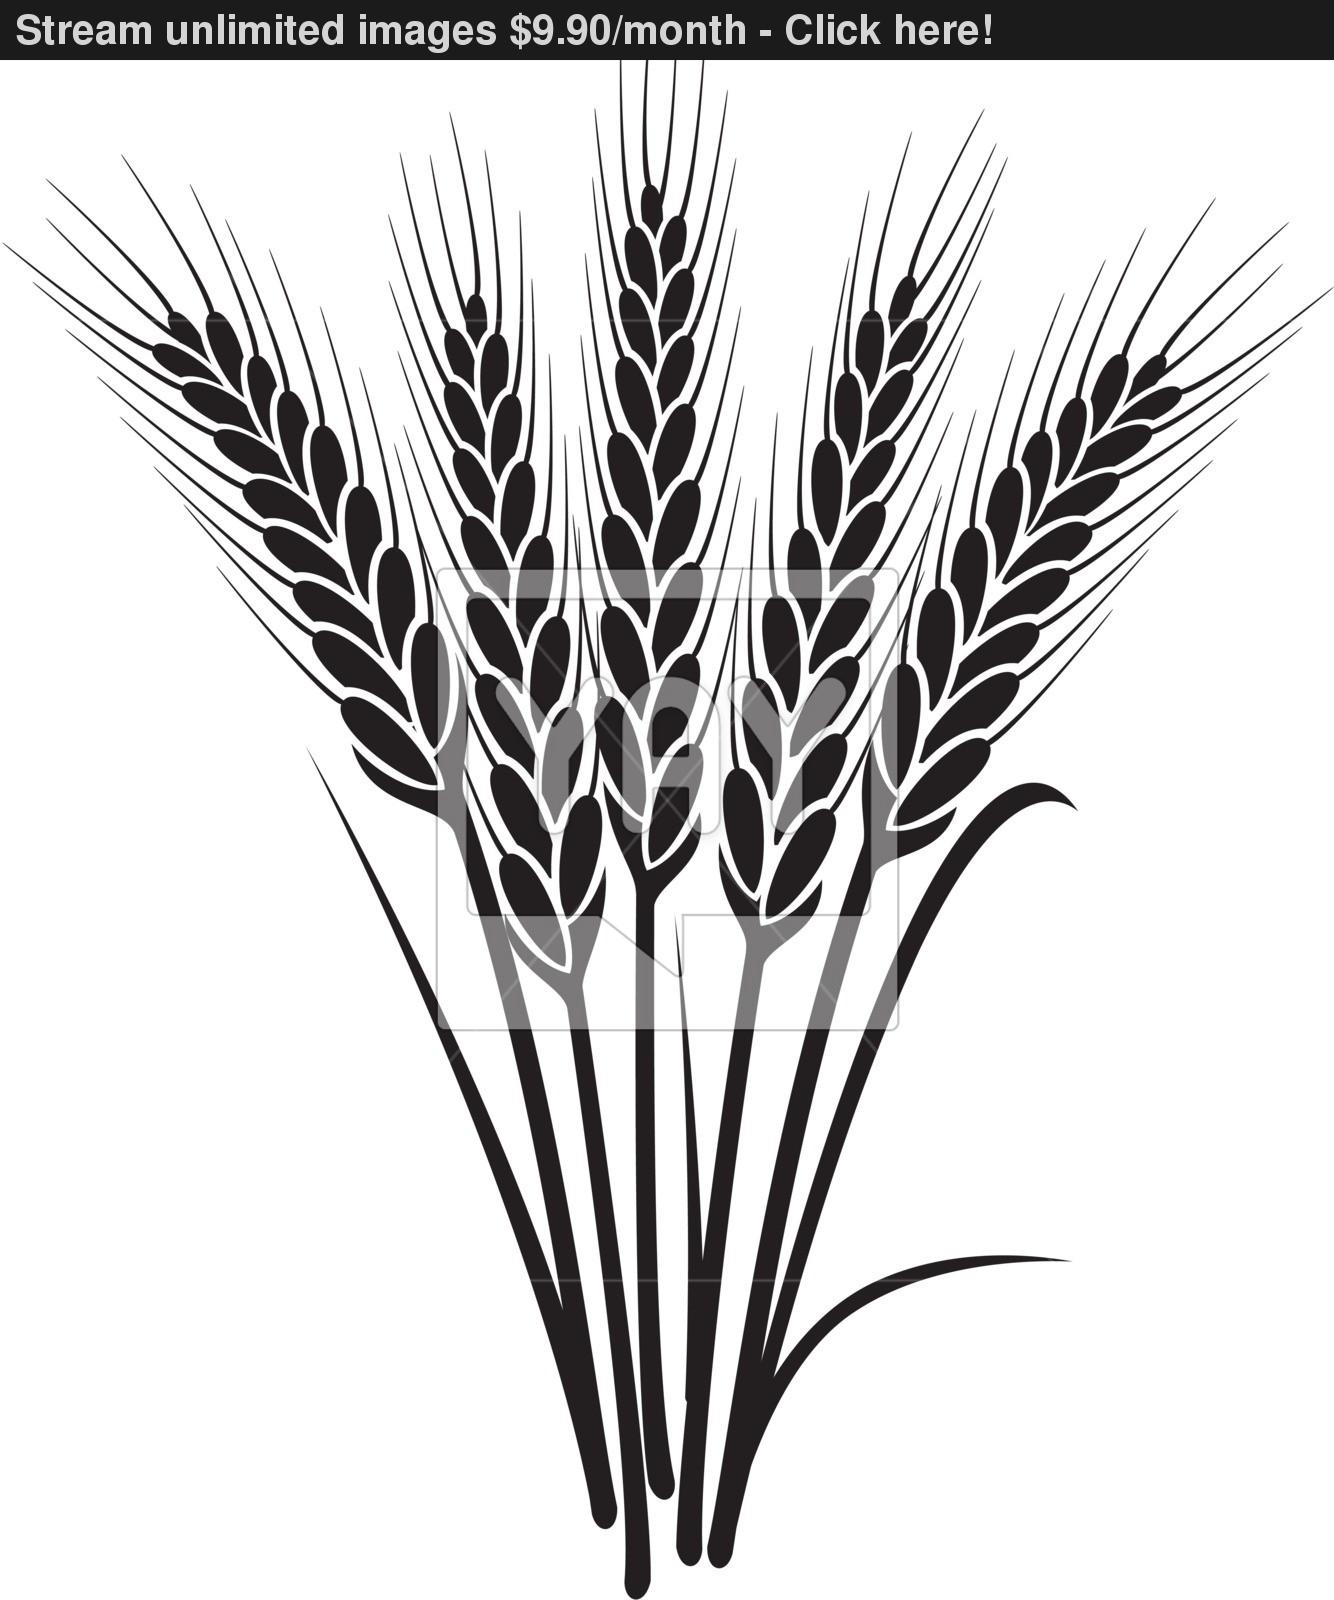 Wheat Clipart Black And White Wheat Stalk Vector Wheat Stalk Field Of